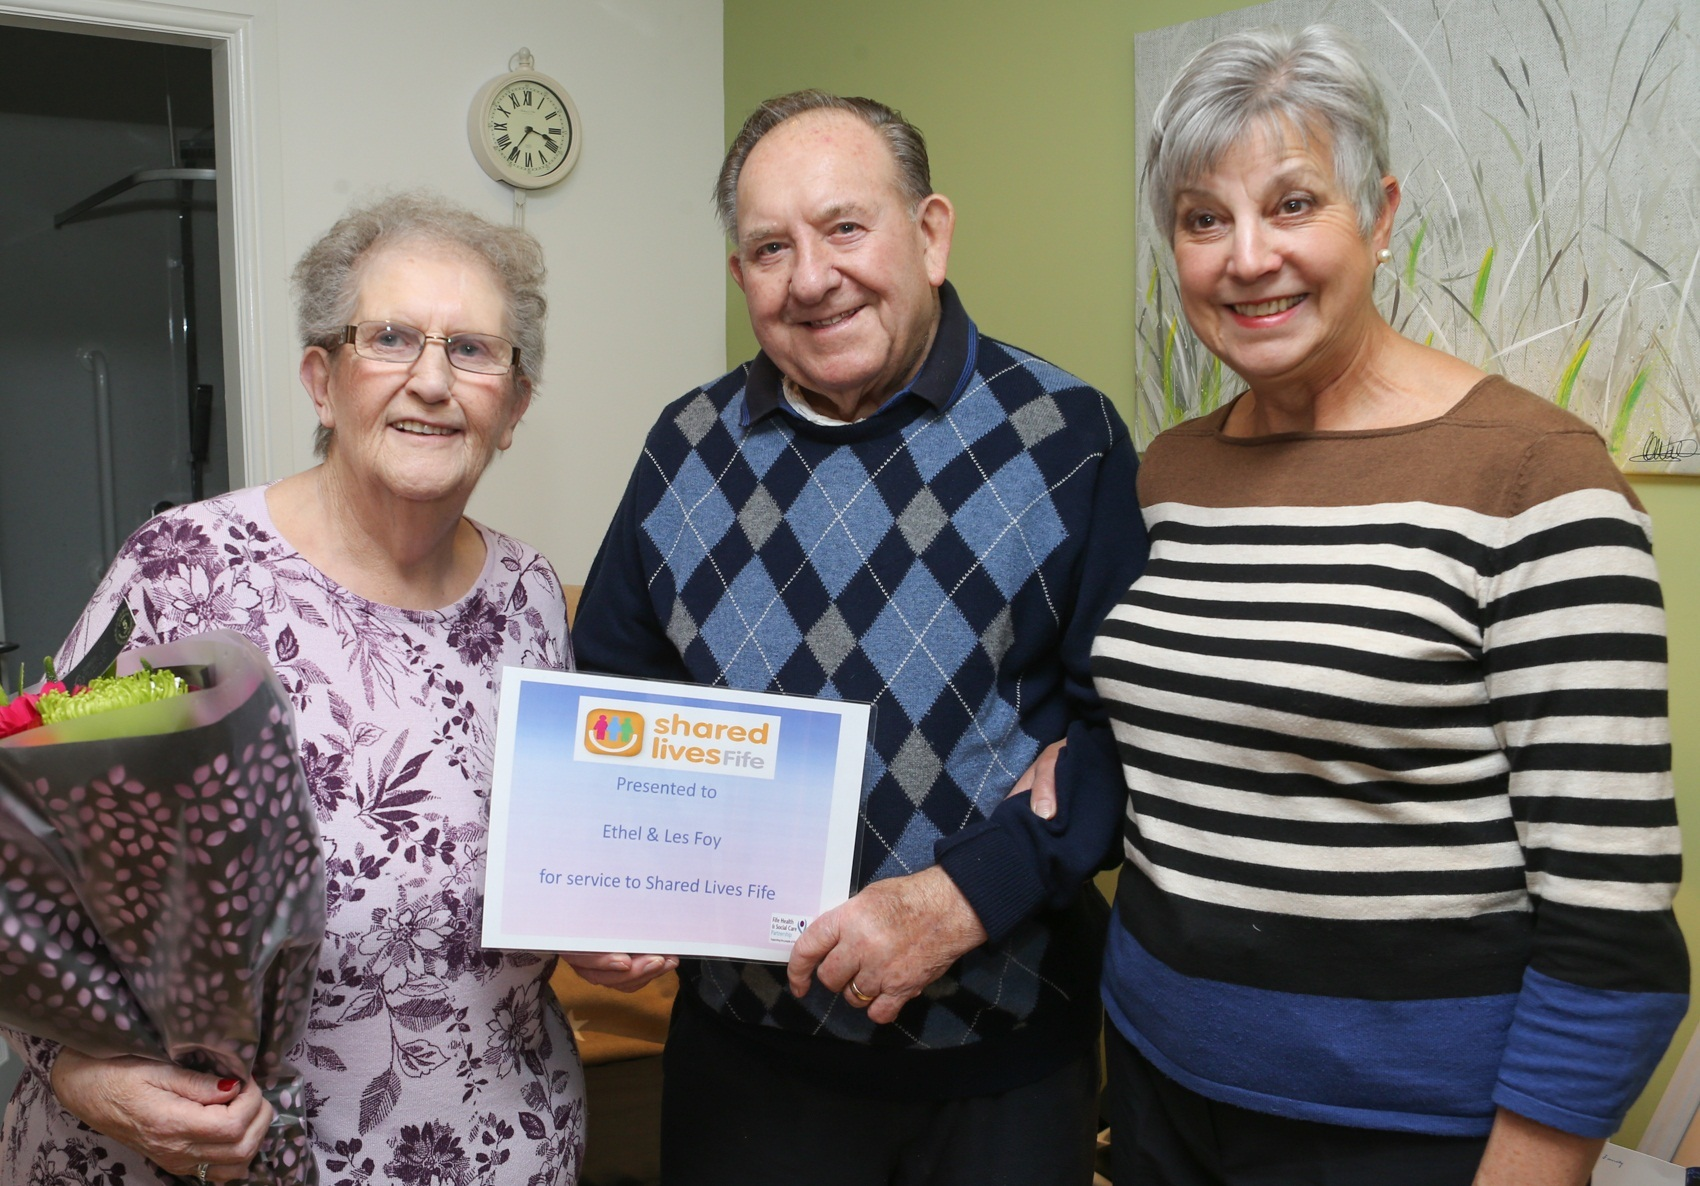 Ethel and Les Foy with former Shared Lives manager Ann Fernie.